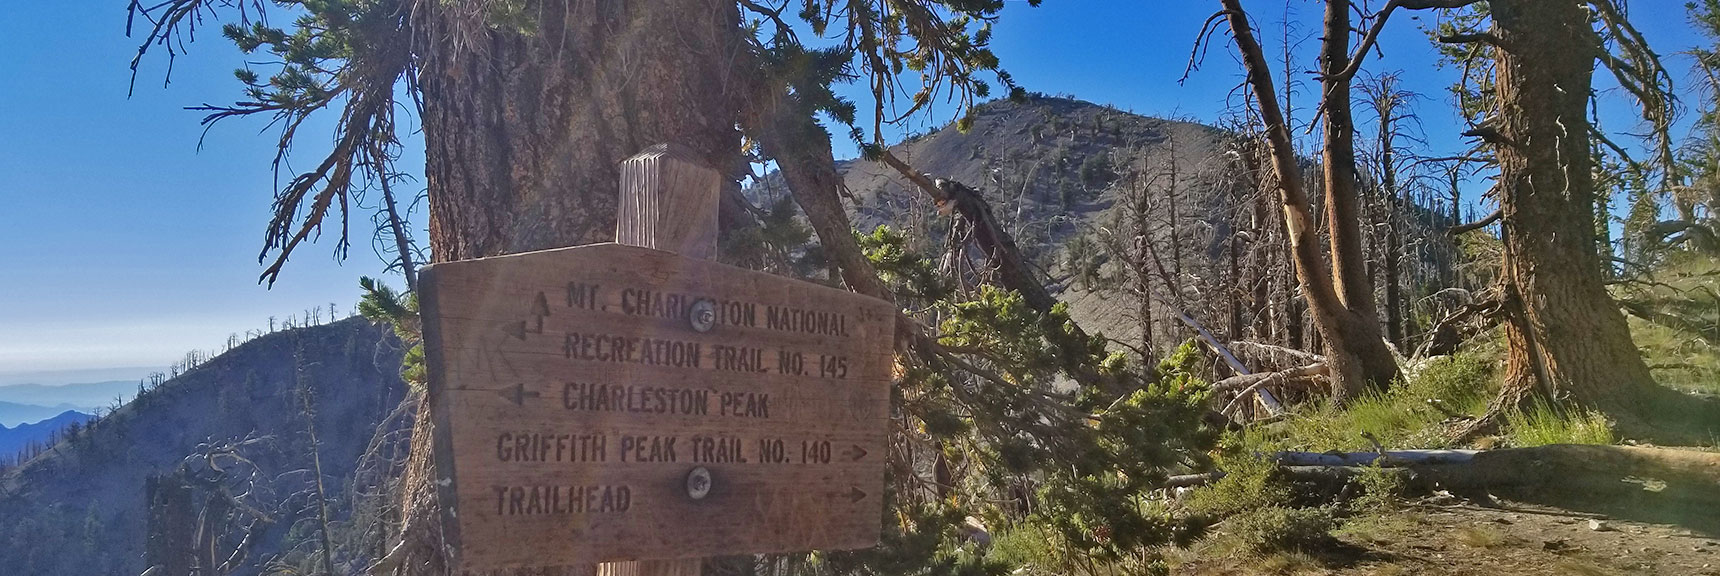 South Climb Trail Junction Directional Sign, Griffith Peak in Background | Griffith Peak & Charleston Peak Circuit Run, Spring Mountains, Nevada